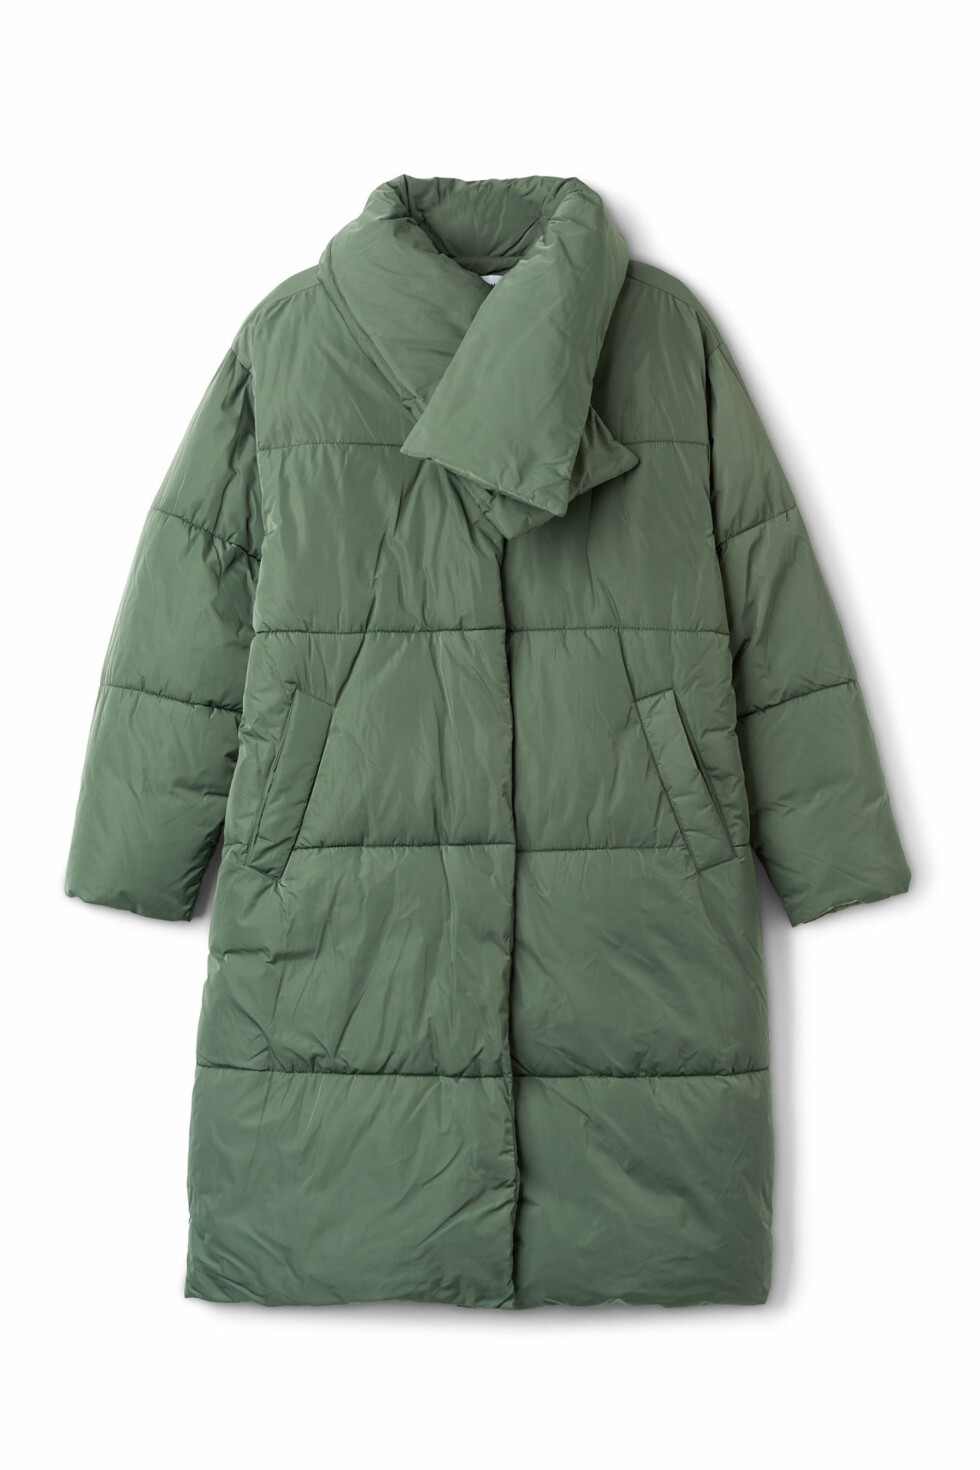 Boblejakke fra Weekday |1500,-| https://www.weekday.com/en_sek/women/categories/jackets-and-coats/_jcr_content/subdepartmentPar/productlisting.products/product.beat-puffer-coat-green.0541453003.html